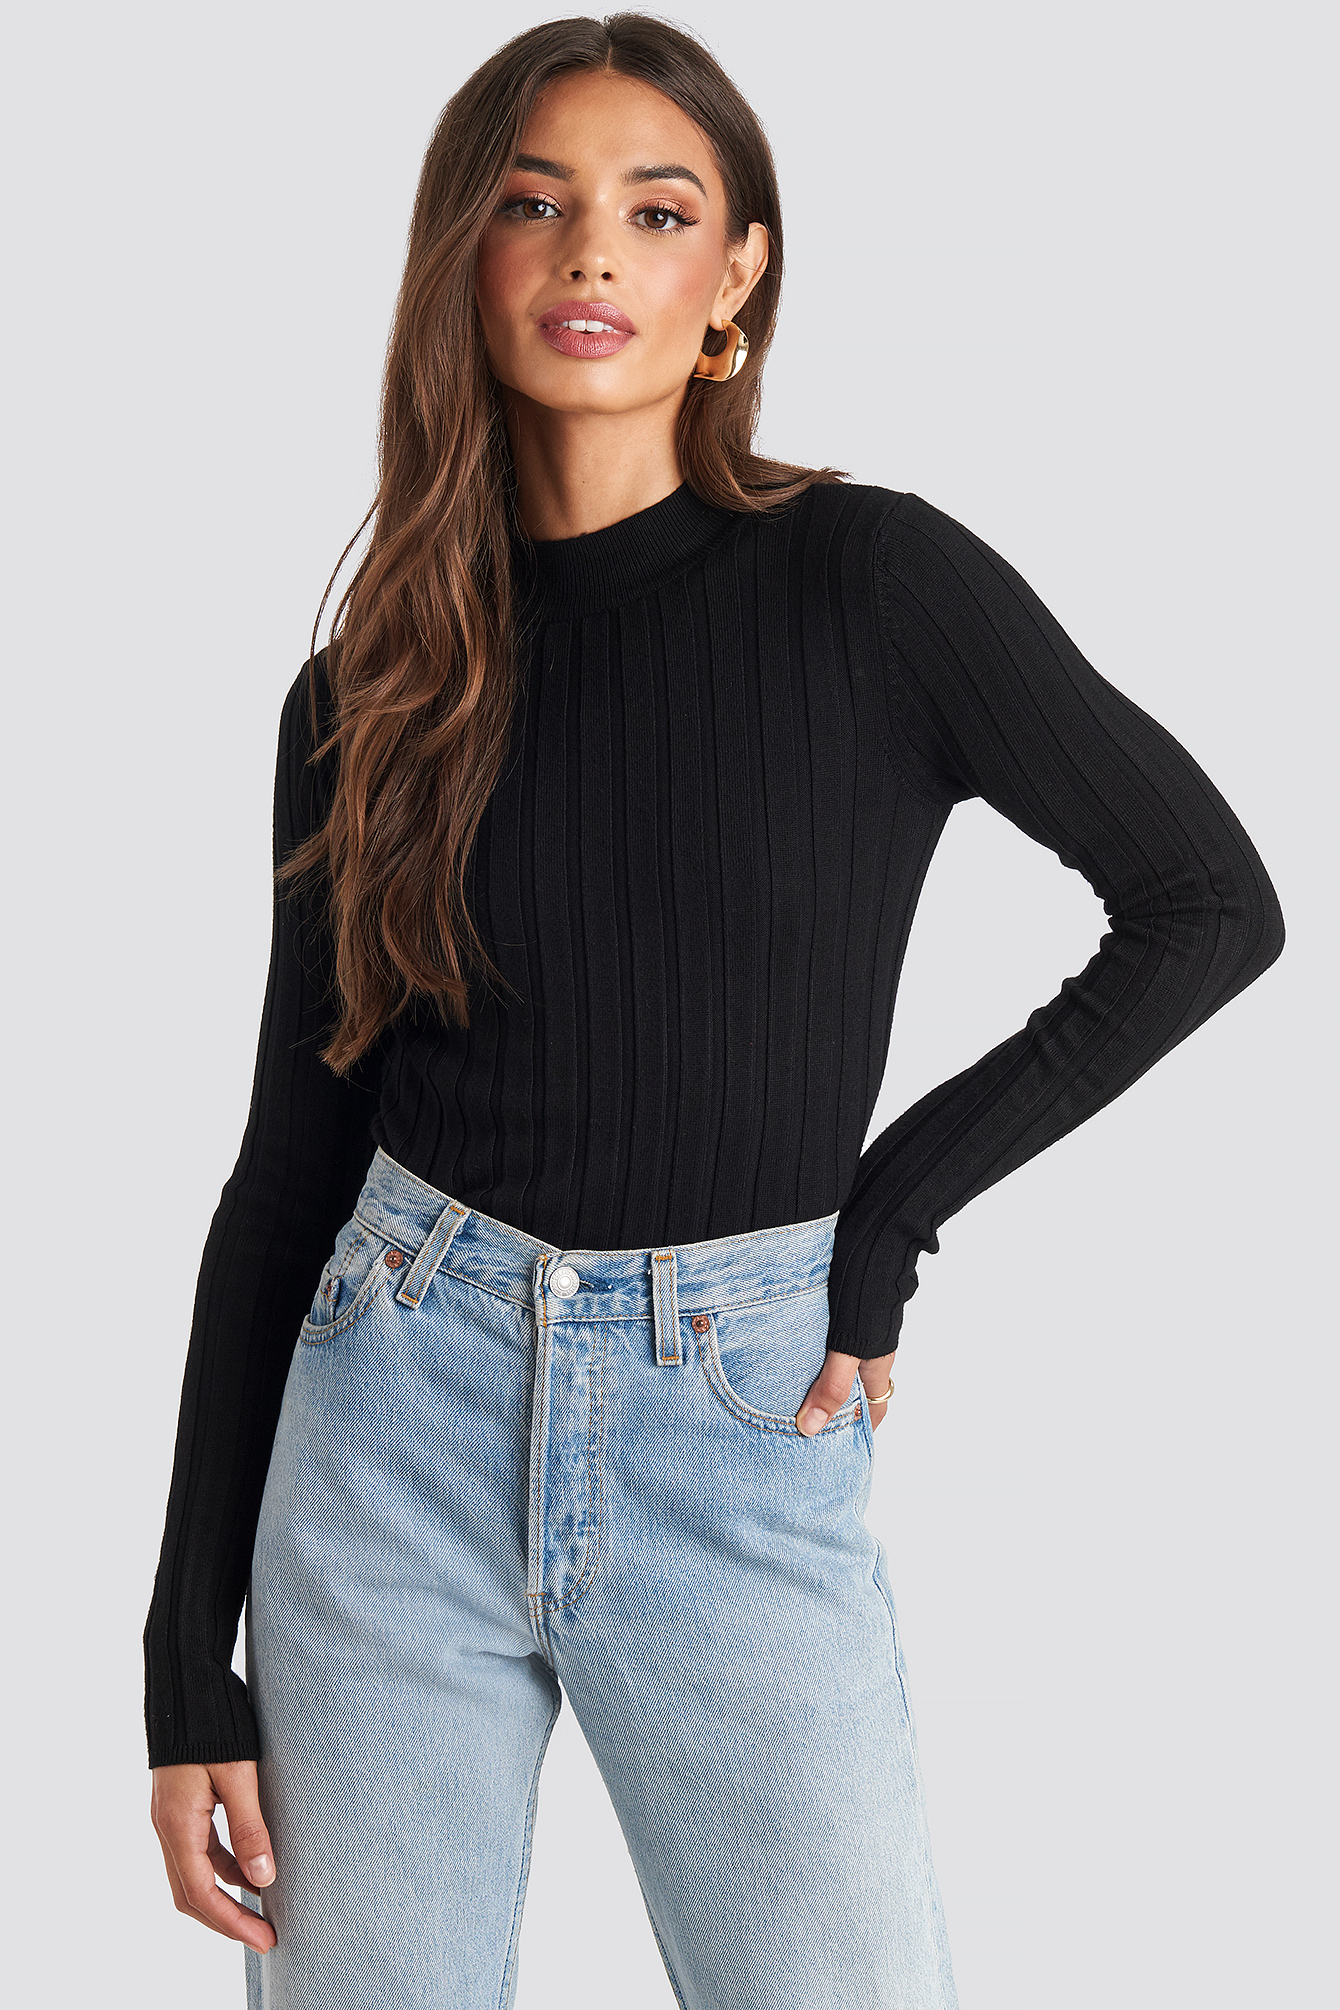 Black Ribbed High Neck Knitted Sweater